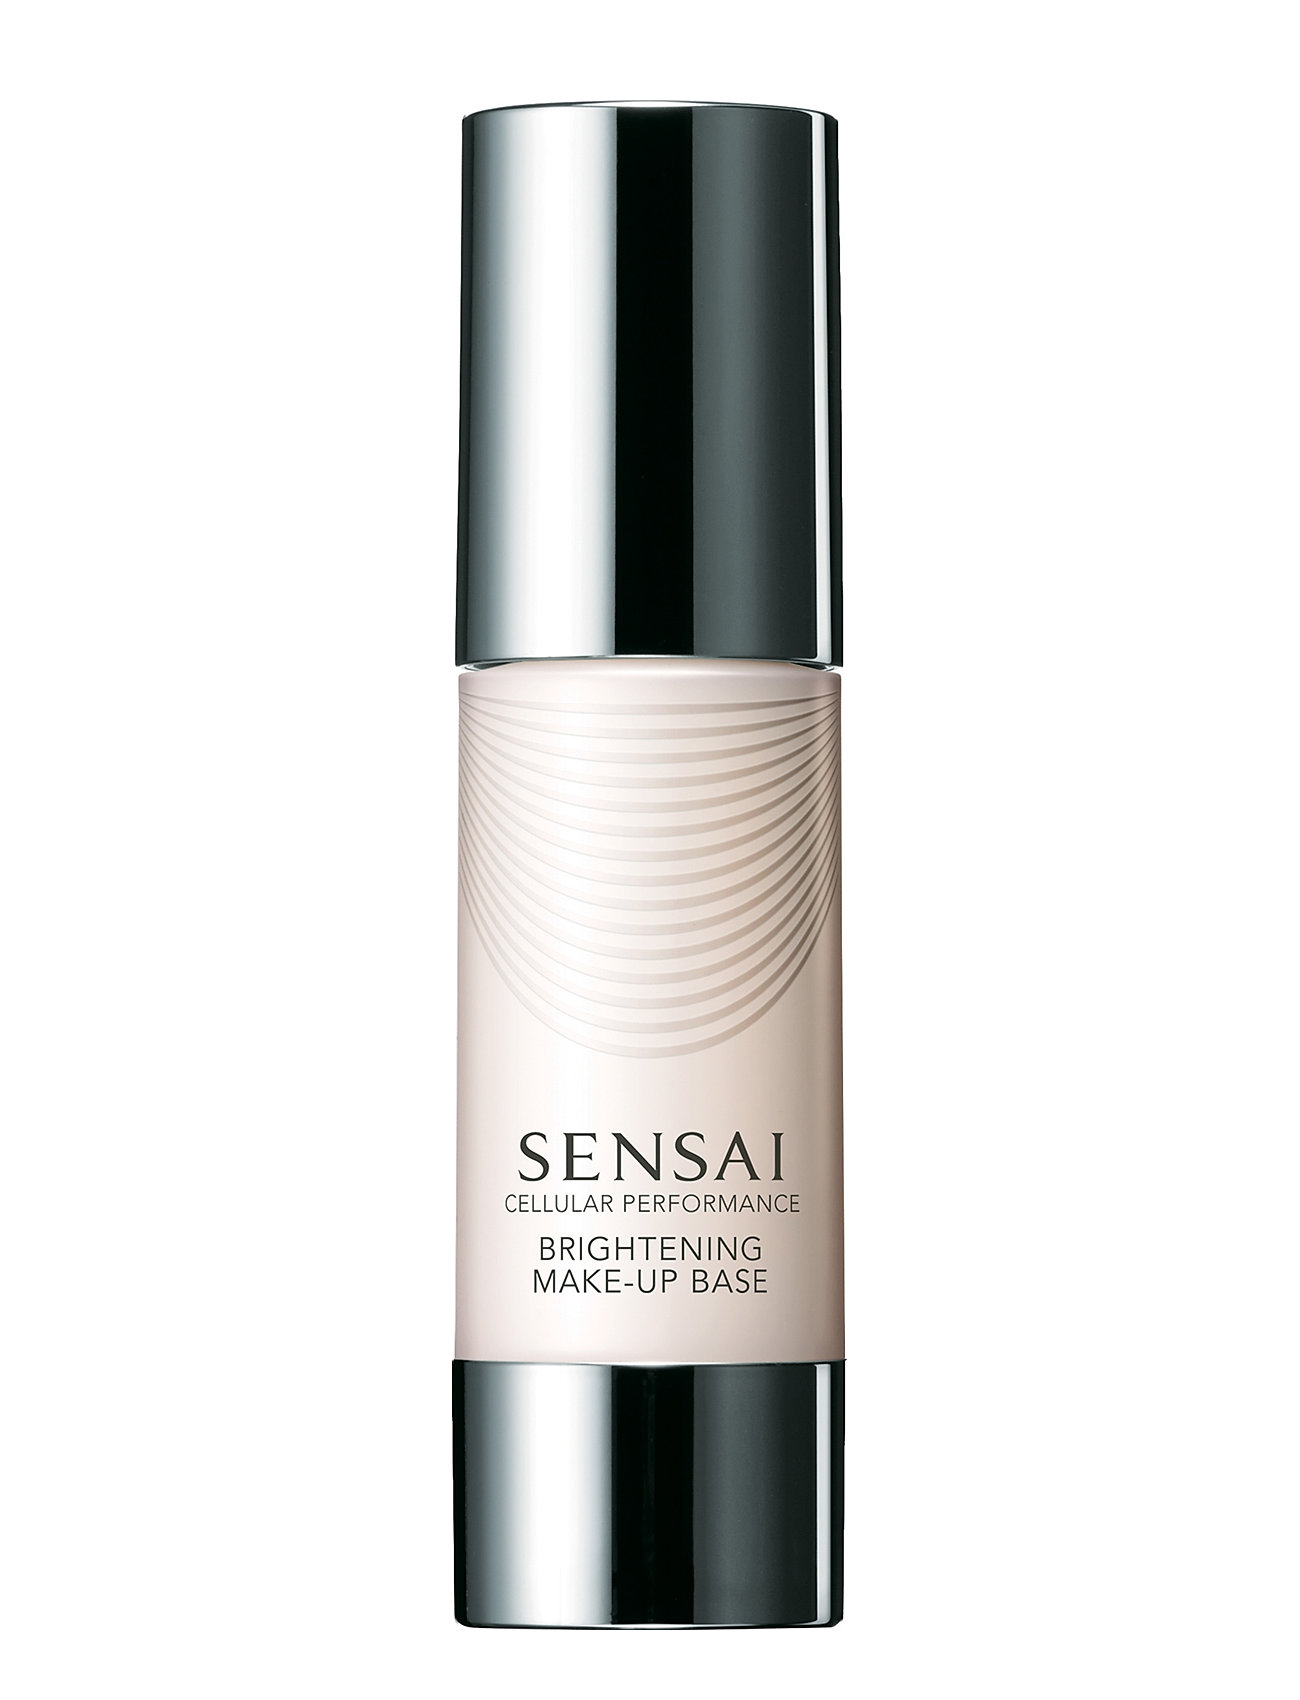 SENSAI Cellular Performance Brightening Make-Up Base - CLEAR